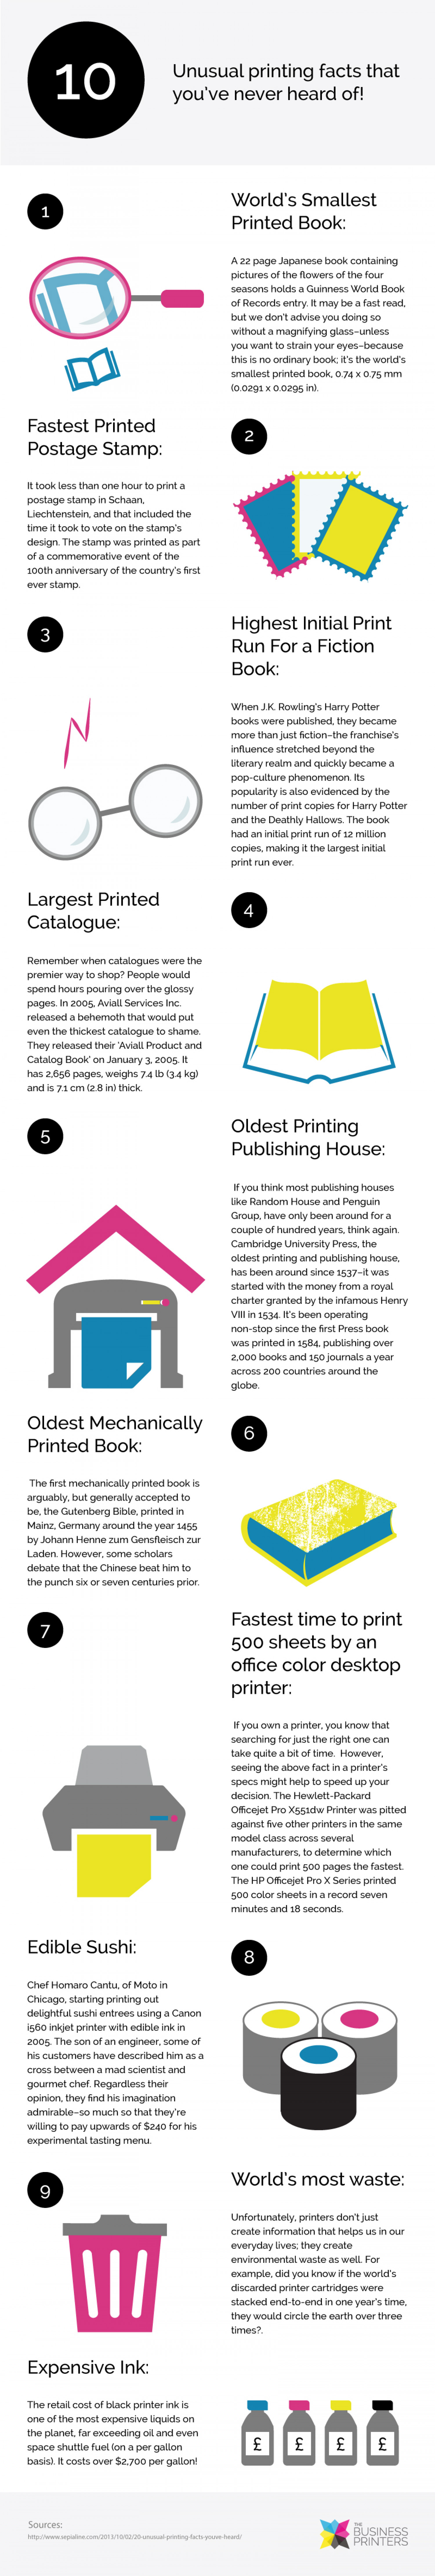 Unusual Printing Facts That You've Never Heard of! Infographic